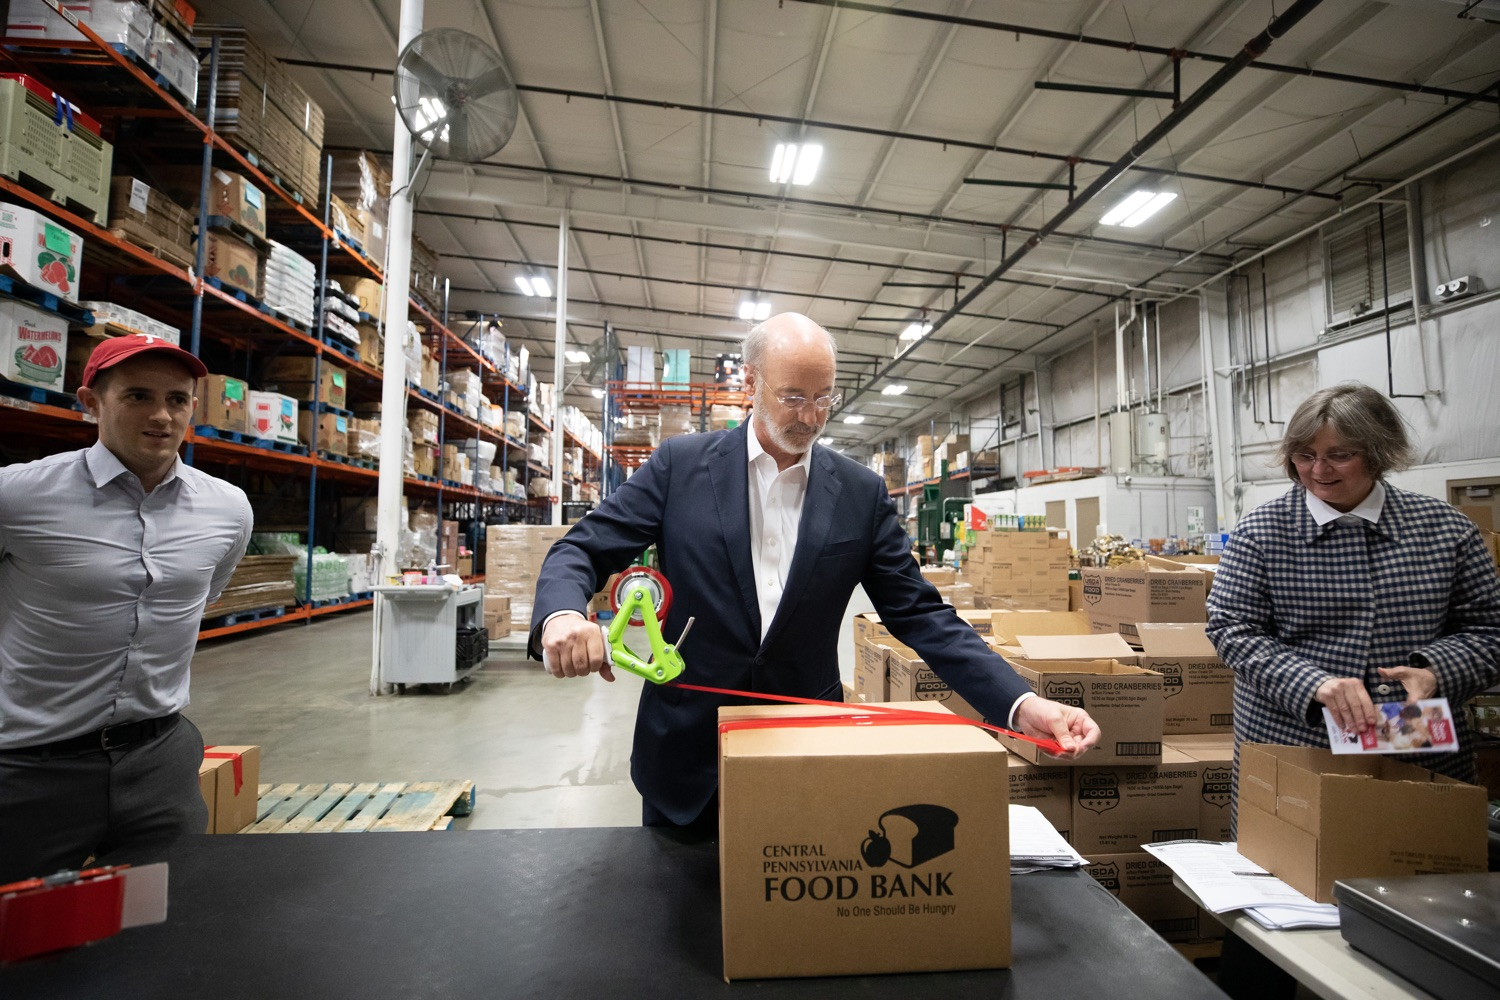 "<a href=""https://filesource.wostreaming.net/commonwealthofpa/photo/17632_gov_foodbank_volunteering_dz_017.jpg"" target=""_blank"">⇣ Download Photo<br></a>Governor Tom Wolf loading boxes of food at the Central Pennsylvania Food Bank.  The governor and first lady visit the Central Pennsylvania Food Bank in Harrisburg to participate in a volunteer project, packing boxes of food for veterans and their families. Ahead of Thanksgiving and the holiday season, Governor Tom Wolf and First Lady Frances Wolf are reminding Pennsylvanians of the importance of helping each other. Harrisburg, PA  Tuesday November 26, 2019"